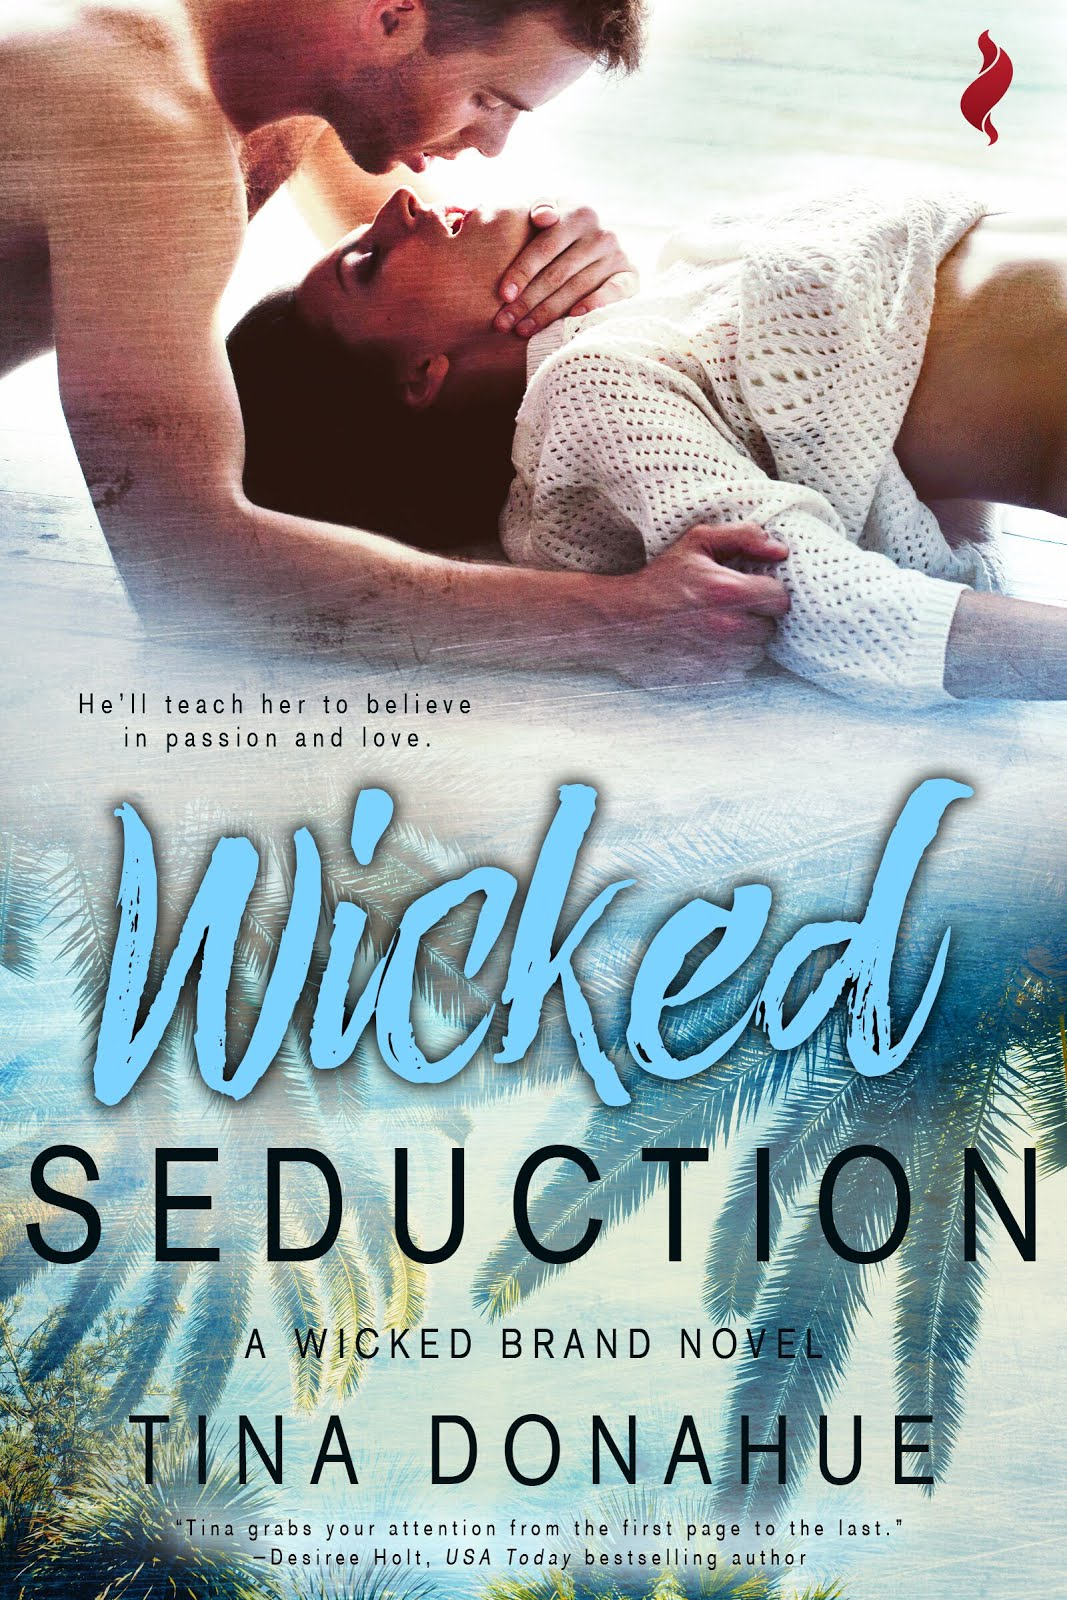 Wicked Seduction